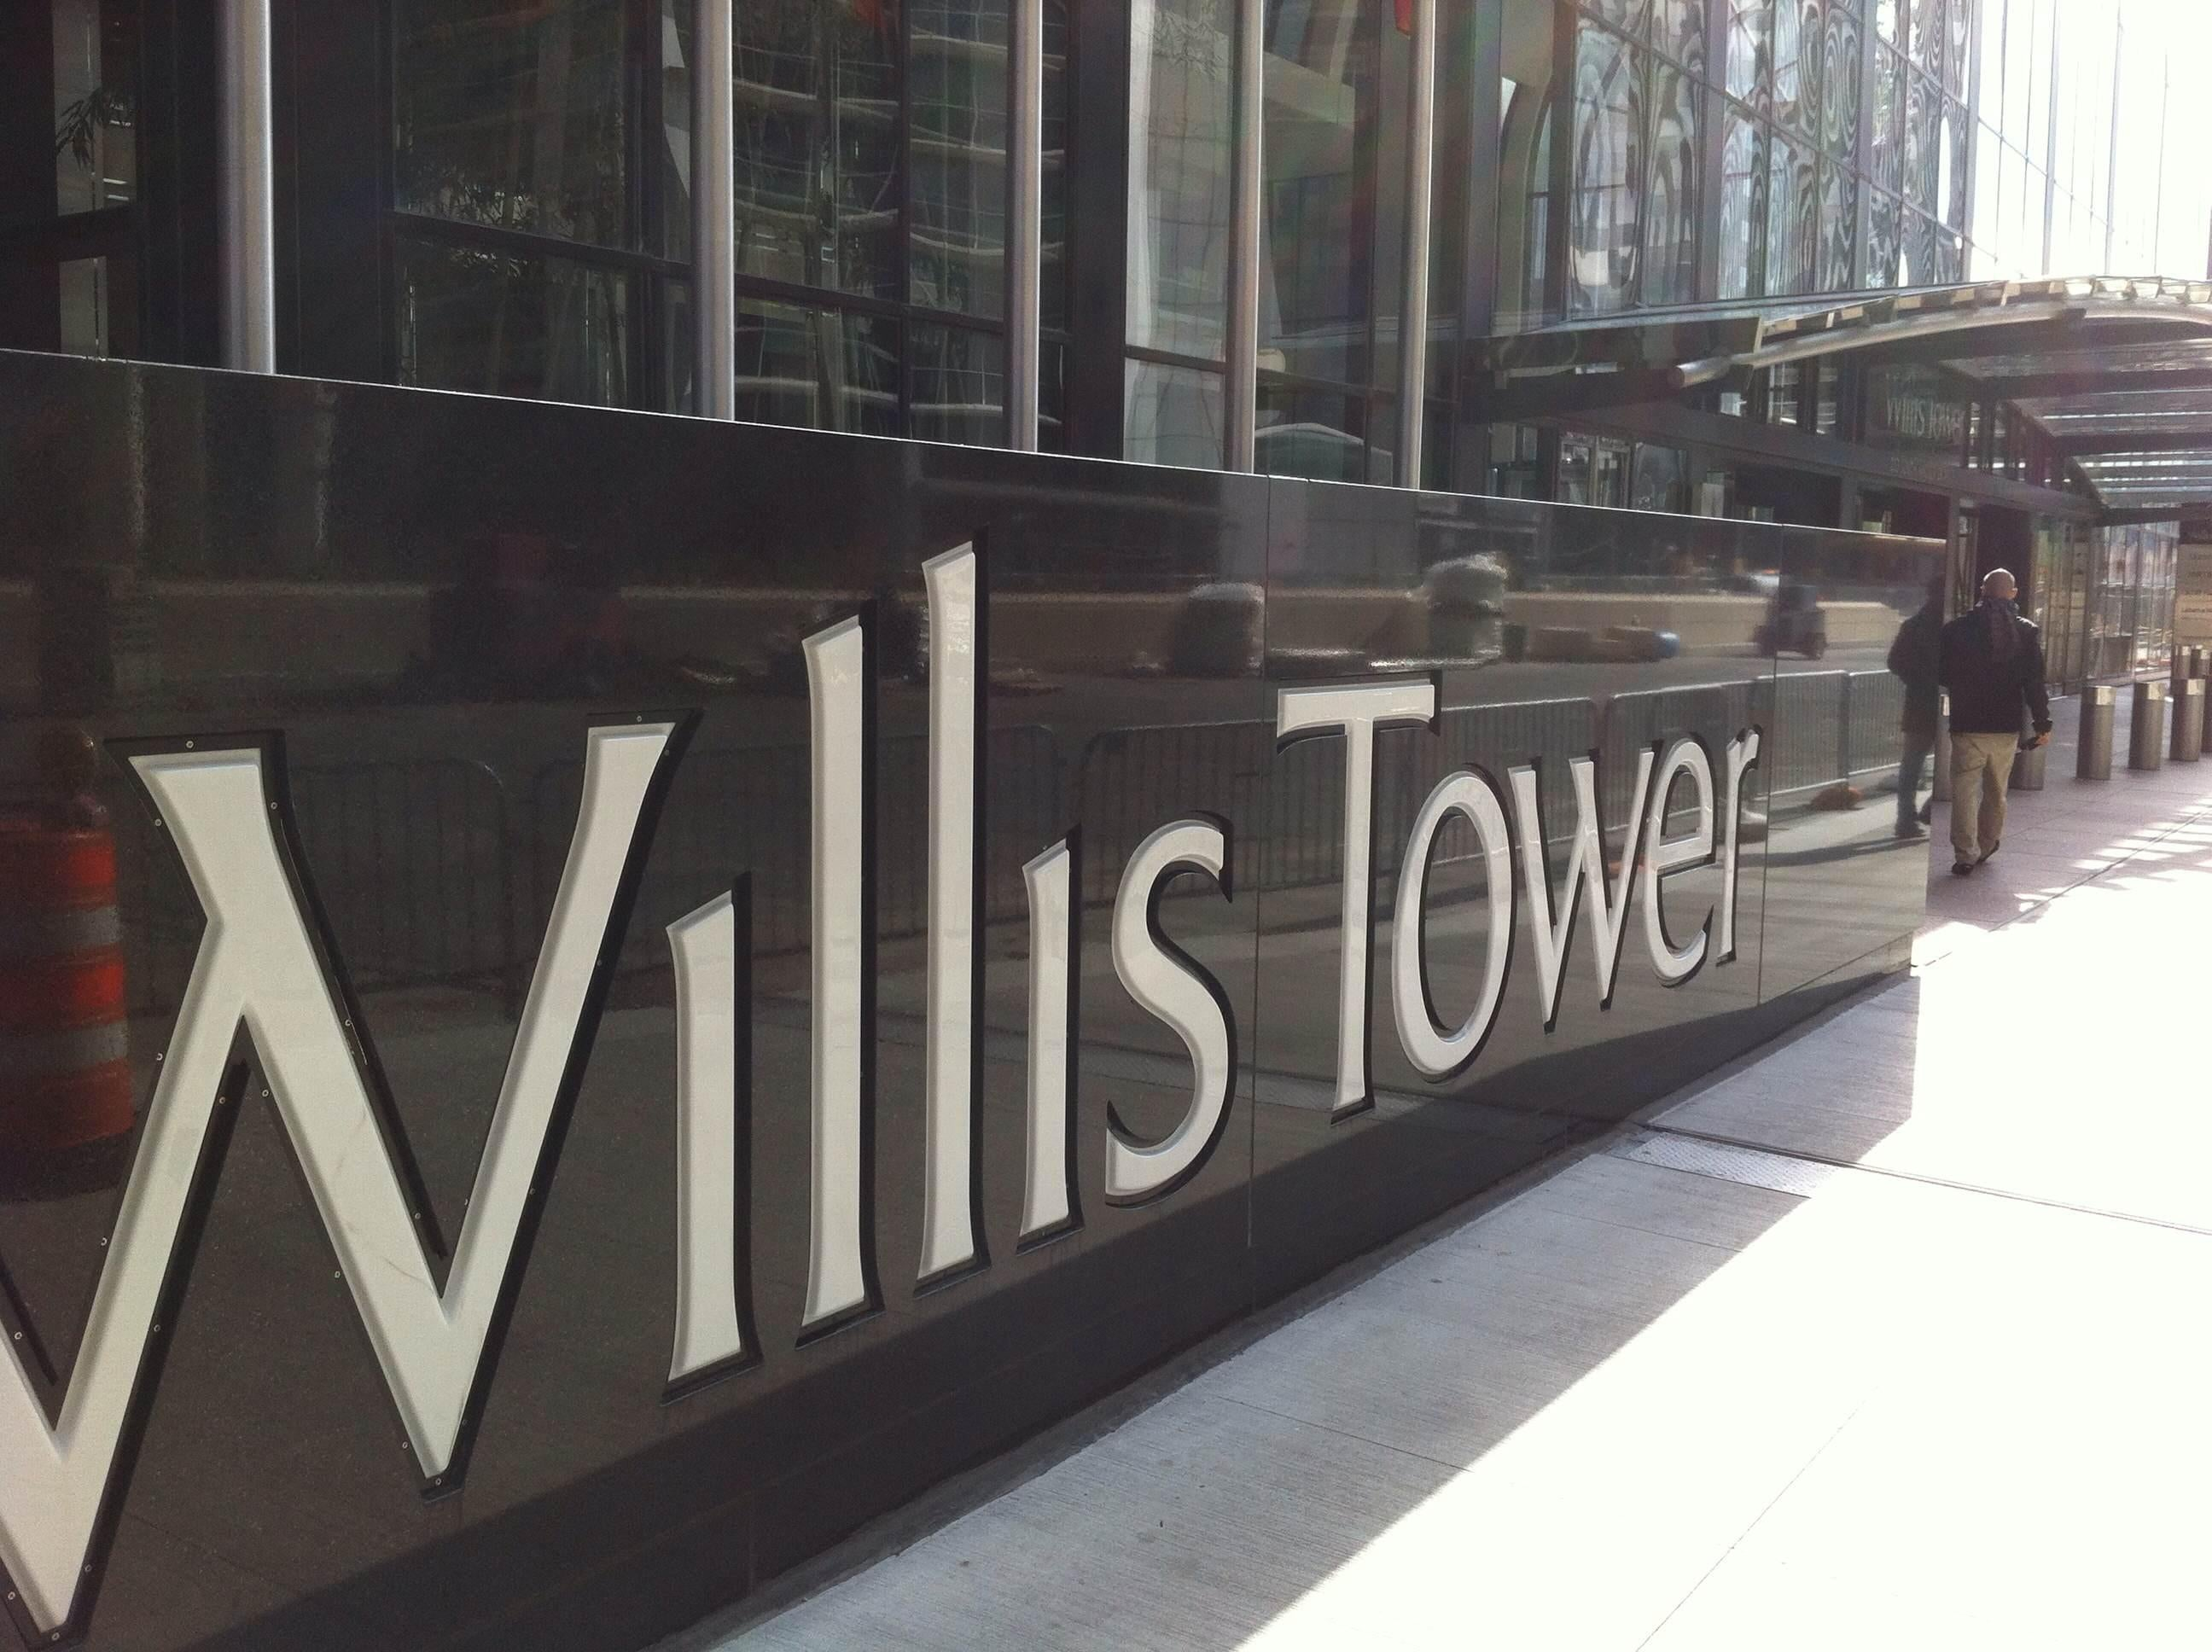 Signage in Willis Tower